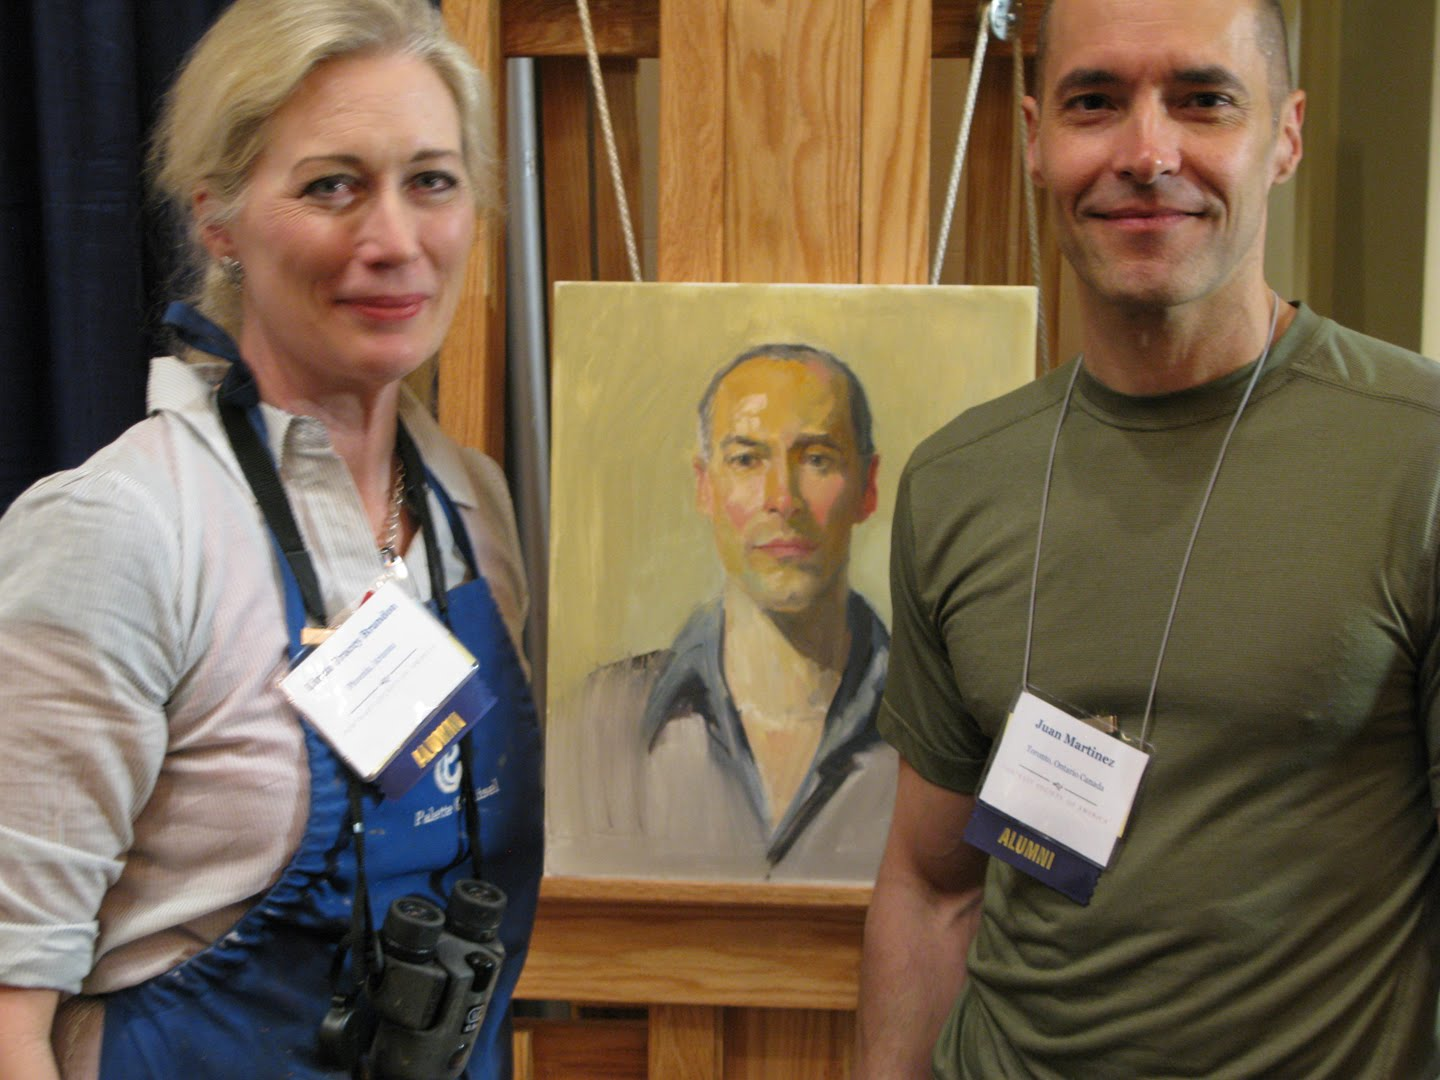 Linda Tracey Brandon's Blog: At the Jack Richeson Co  booth last